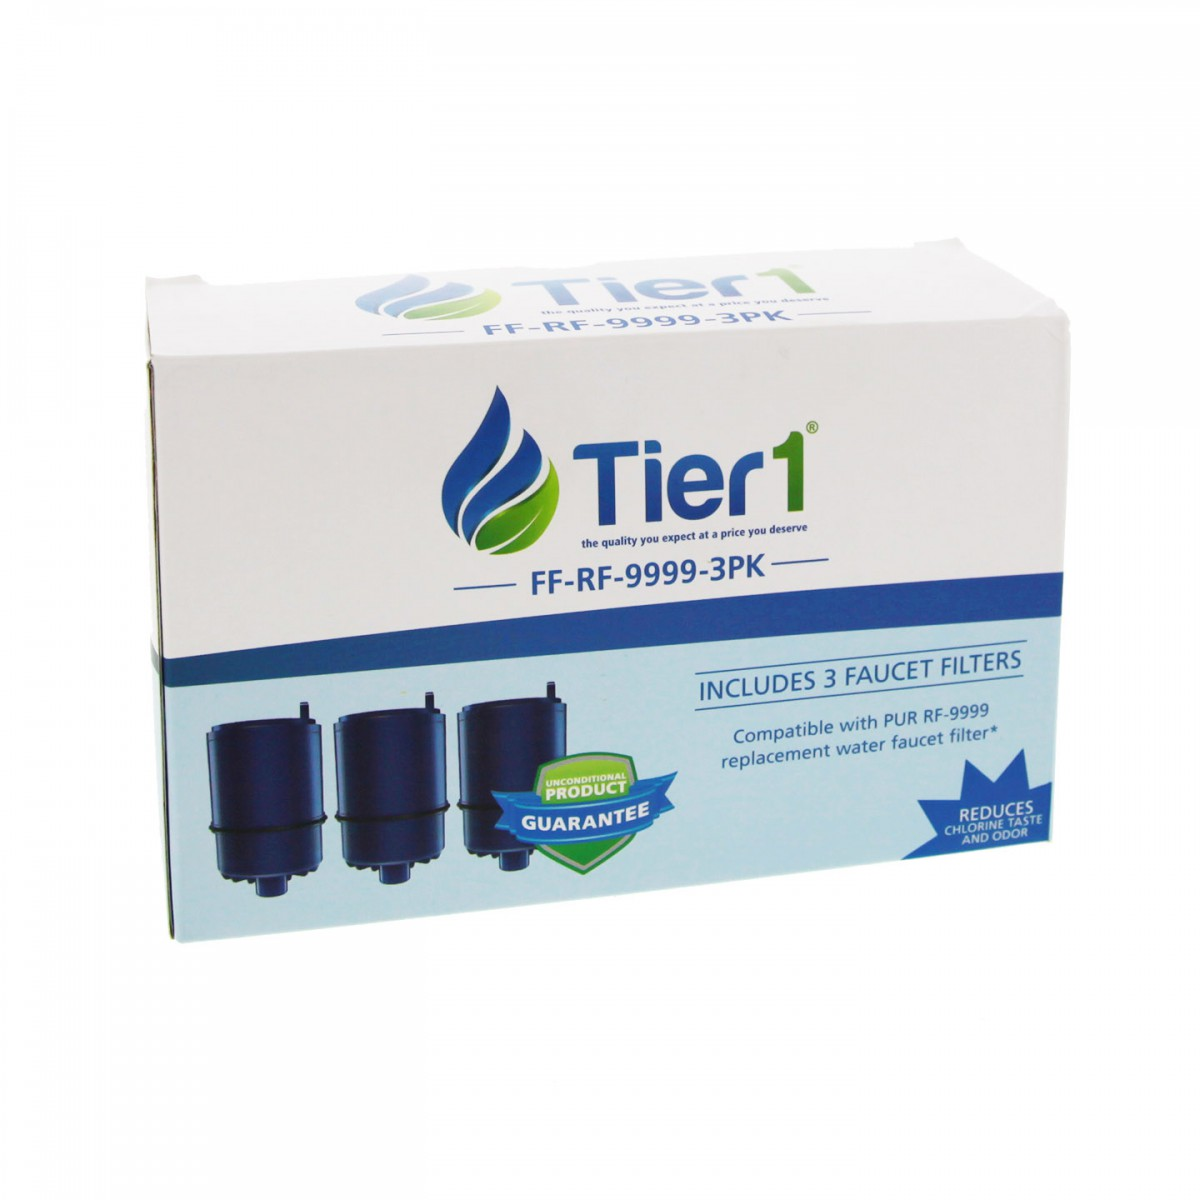 Tier1 Pur Rf 9999 Comparable Faucet Filter Replacement 3 Pack